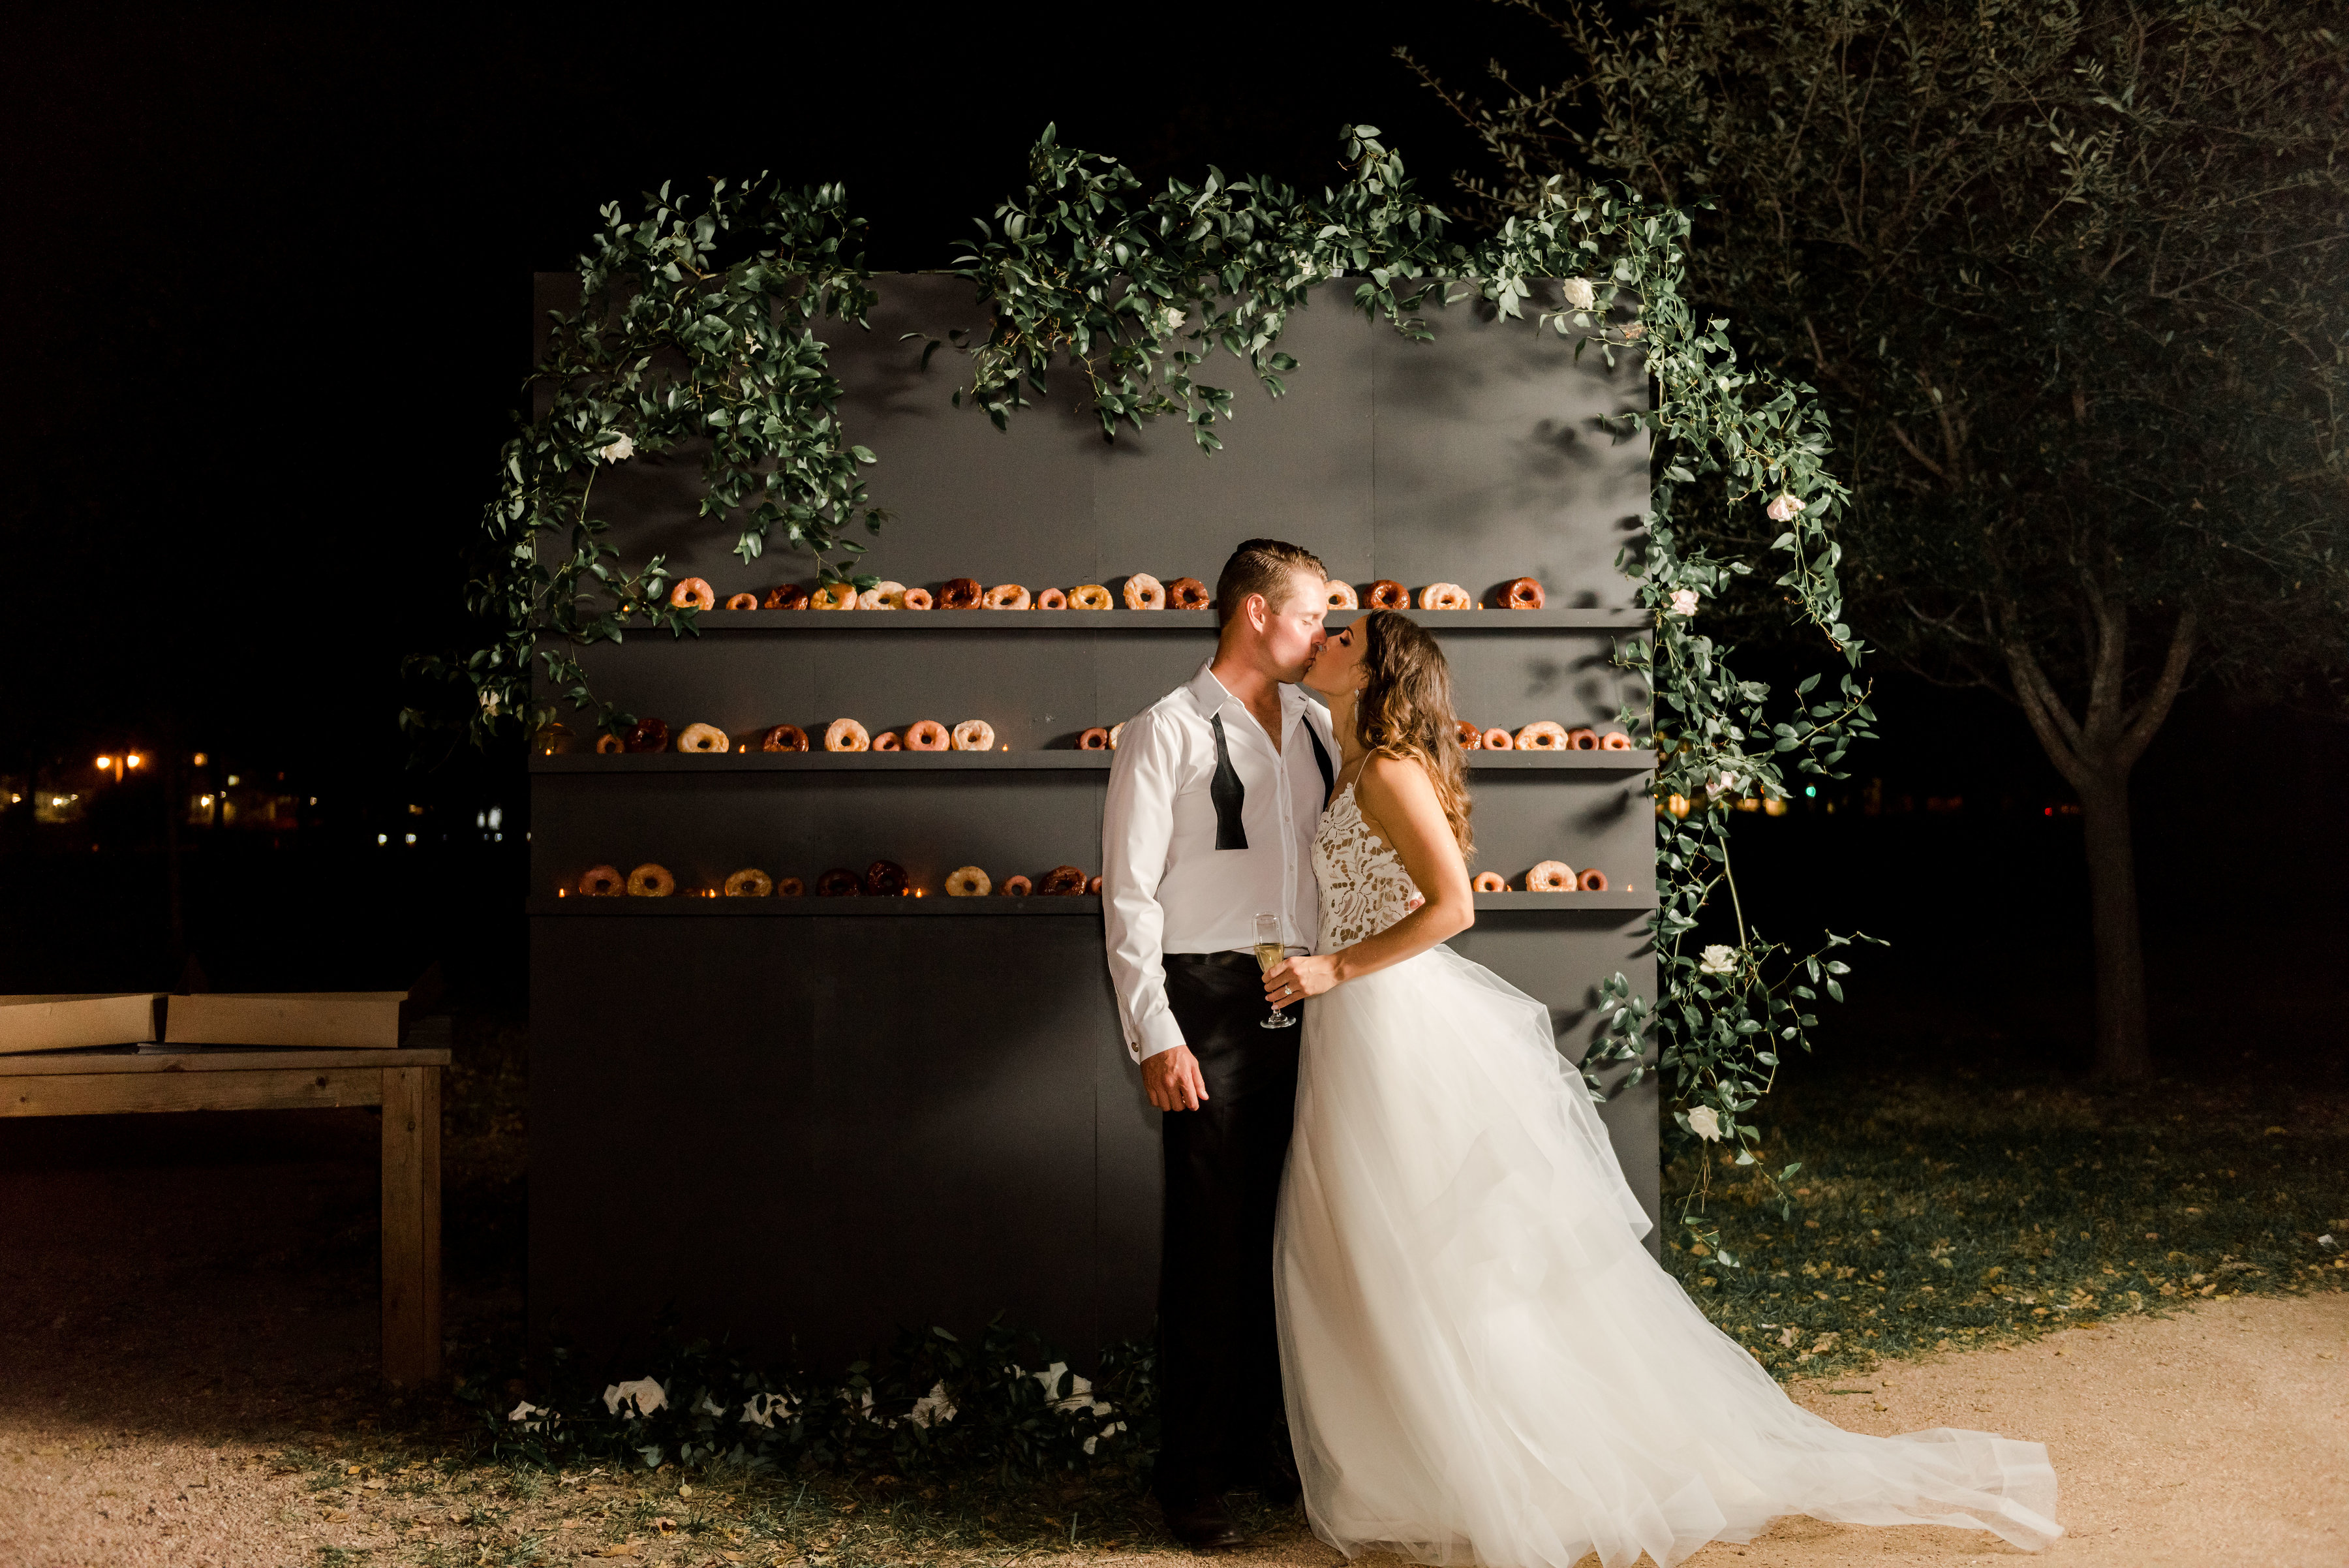 Donut Wall for Wedding